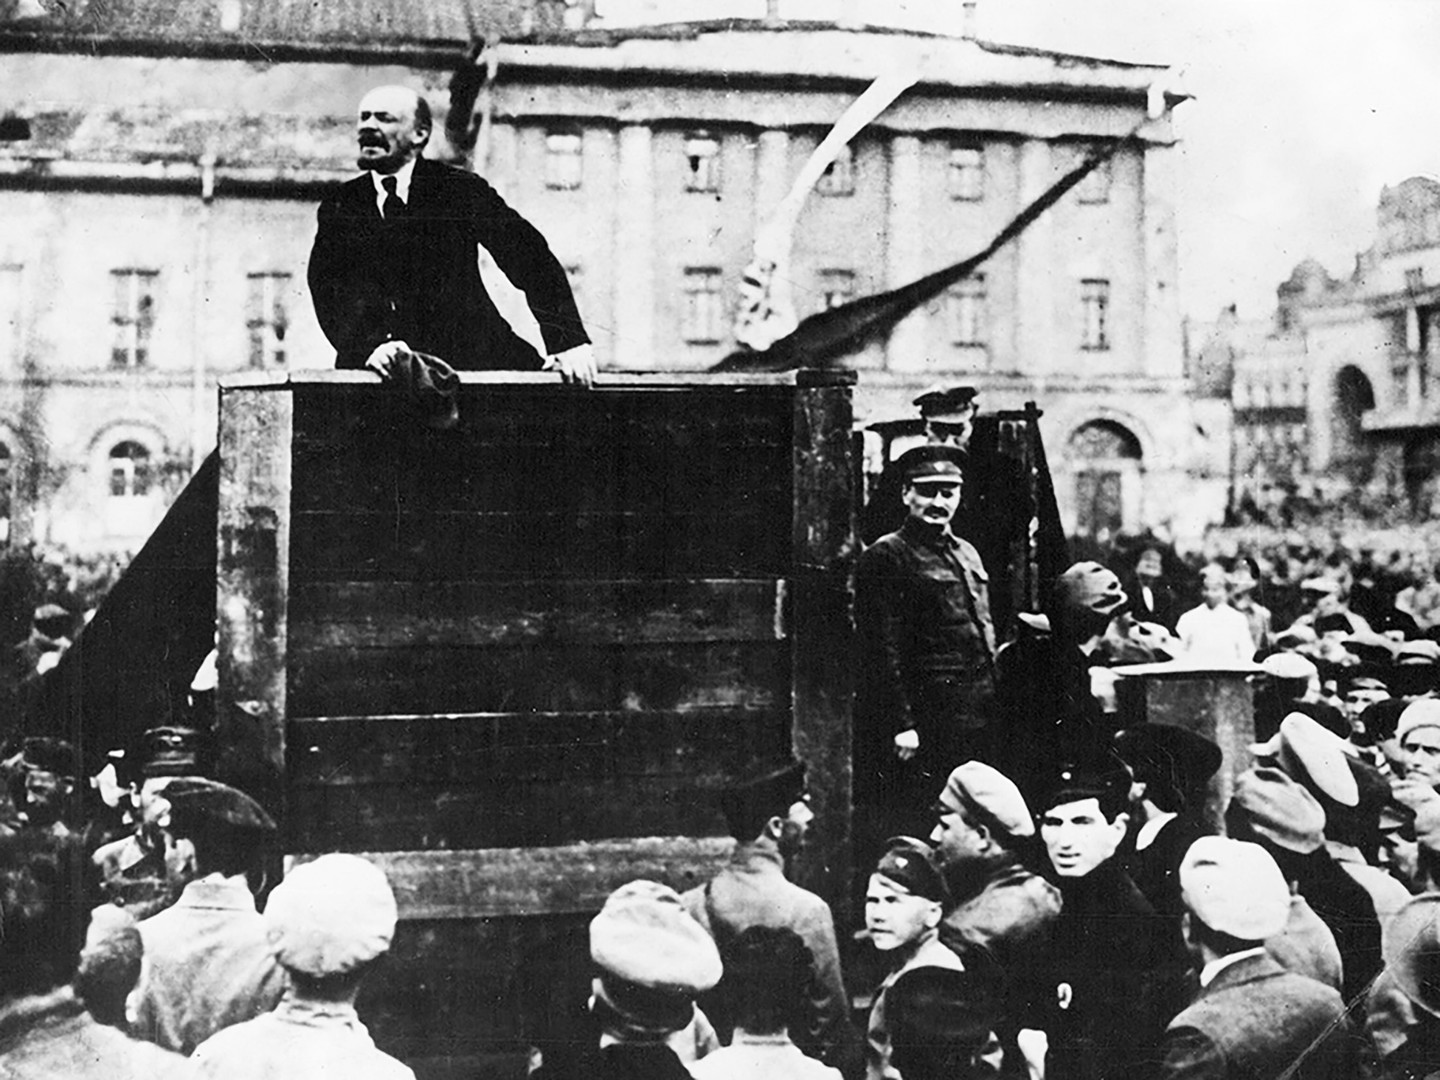 Vladimir Lenin addresses crowd In Petrograd's Sverdlov Square in 1919. Leon Trotsky stands on the right.